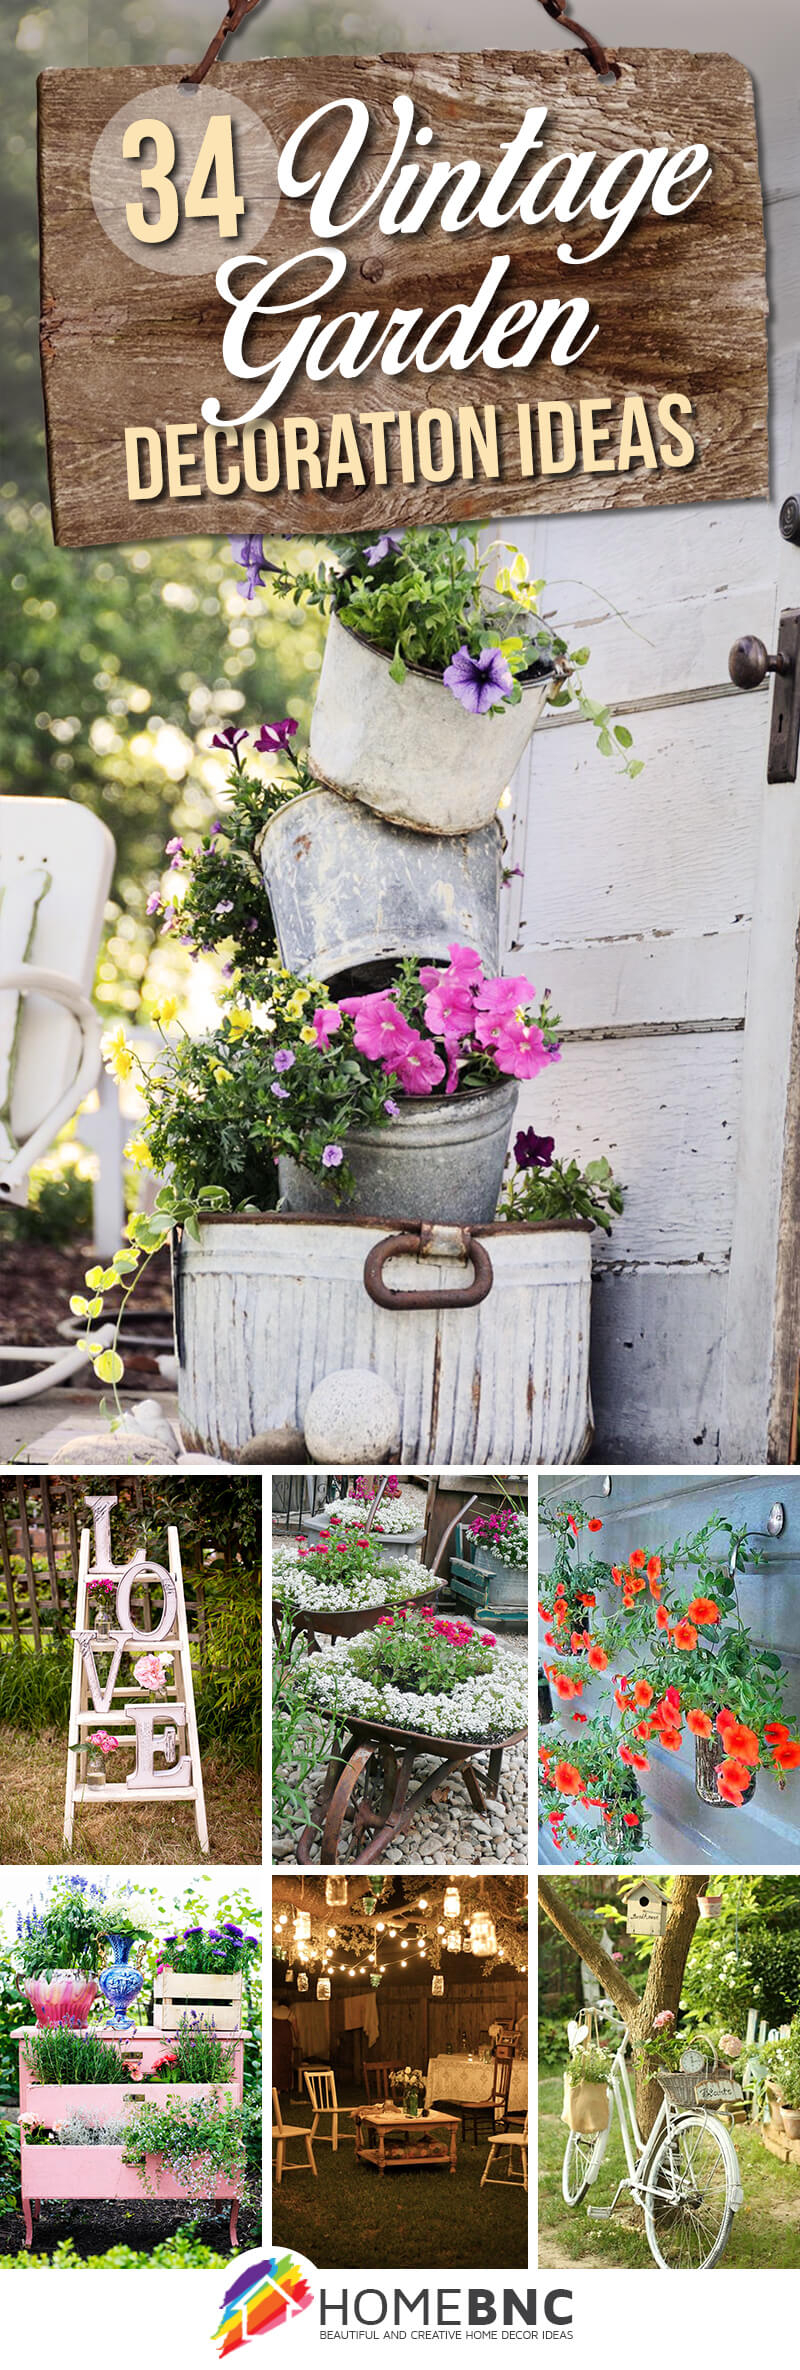 34 Best Vintage Garden Decor Ideas And Designs For 2019 in 11 Smart Ideas How to Build Decorating Backyard Ideas